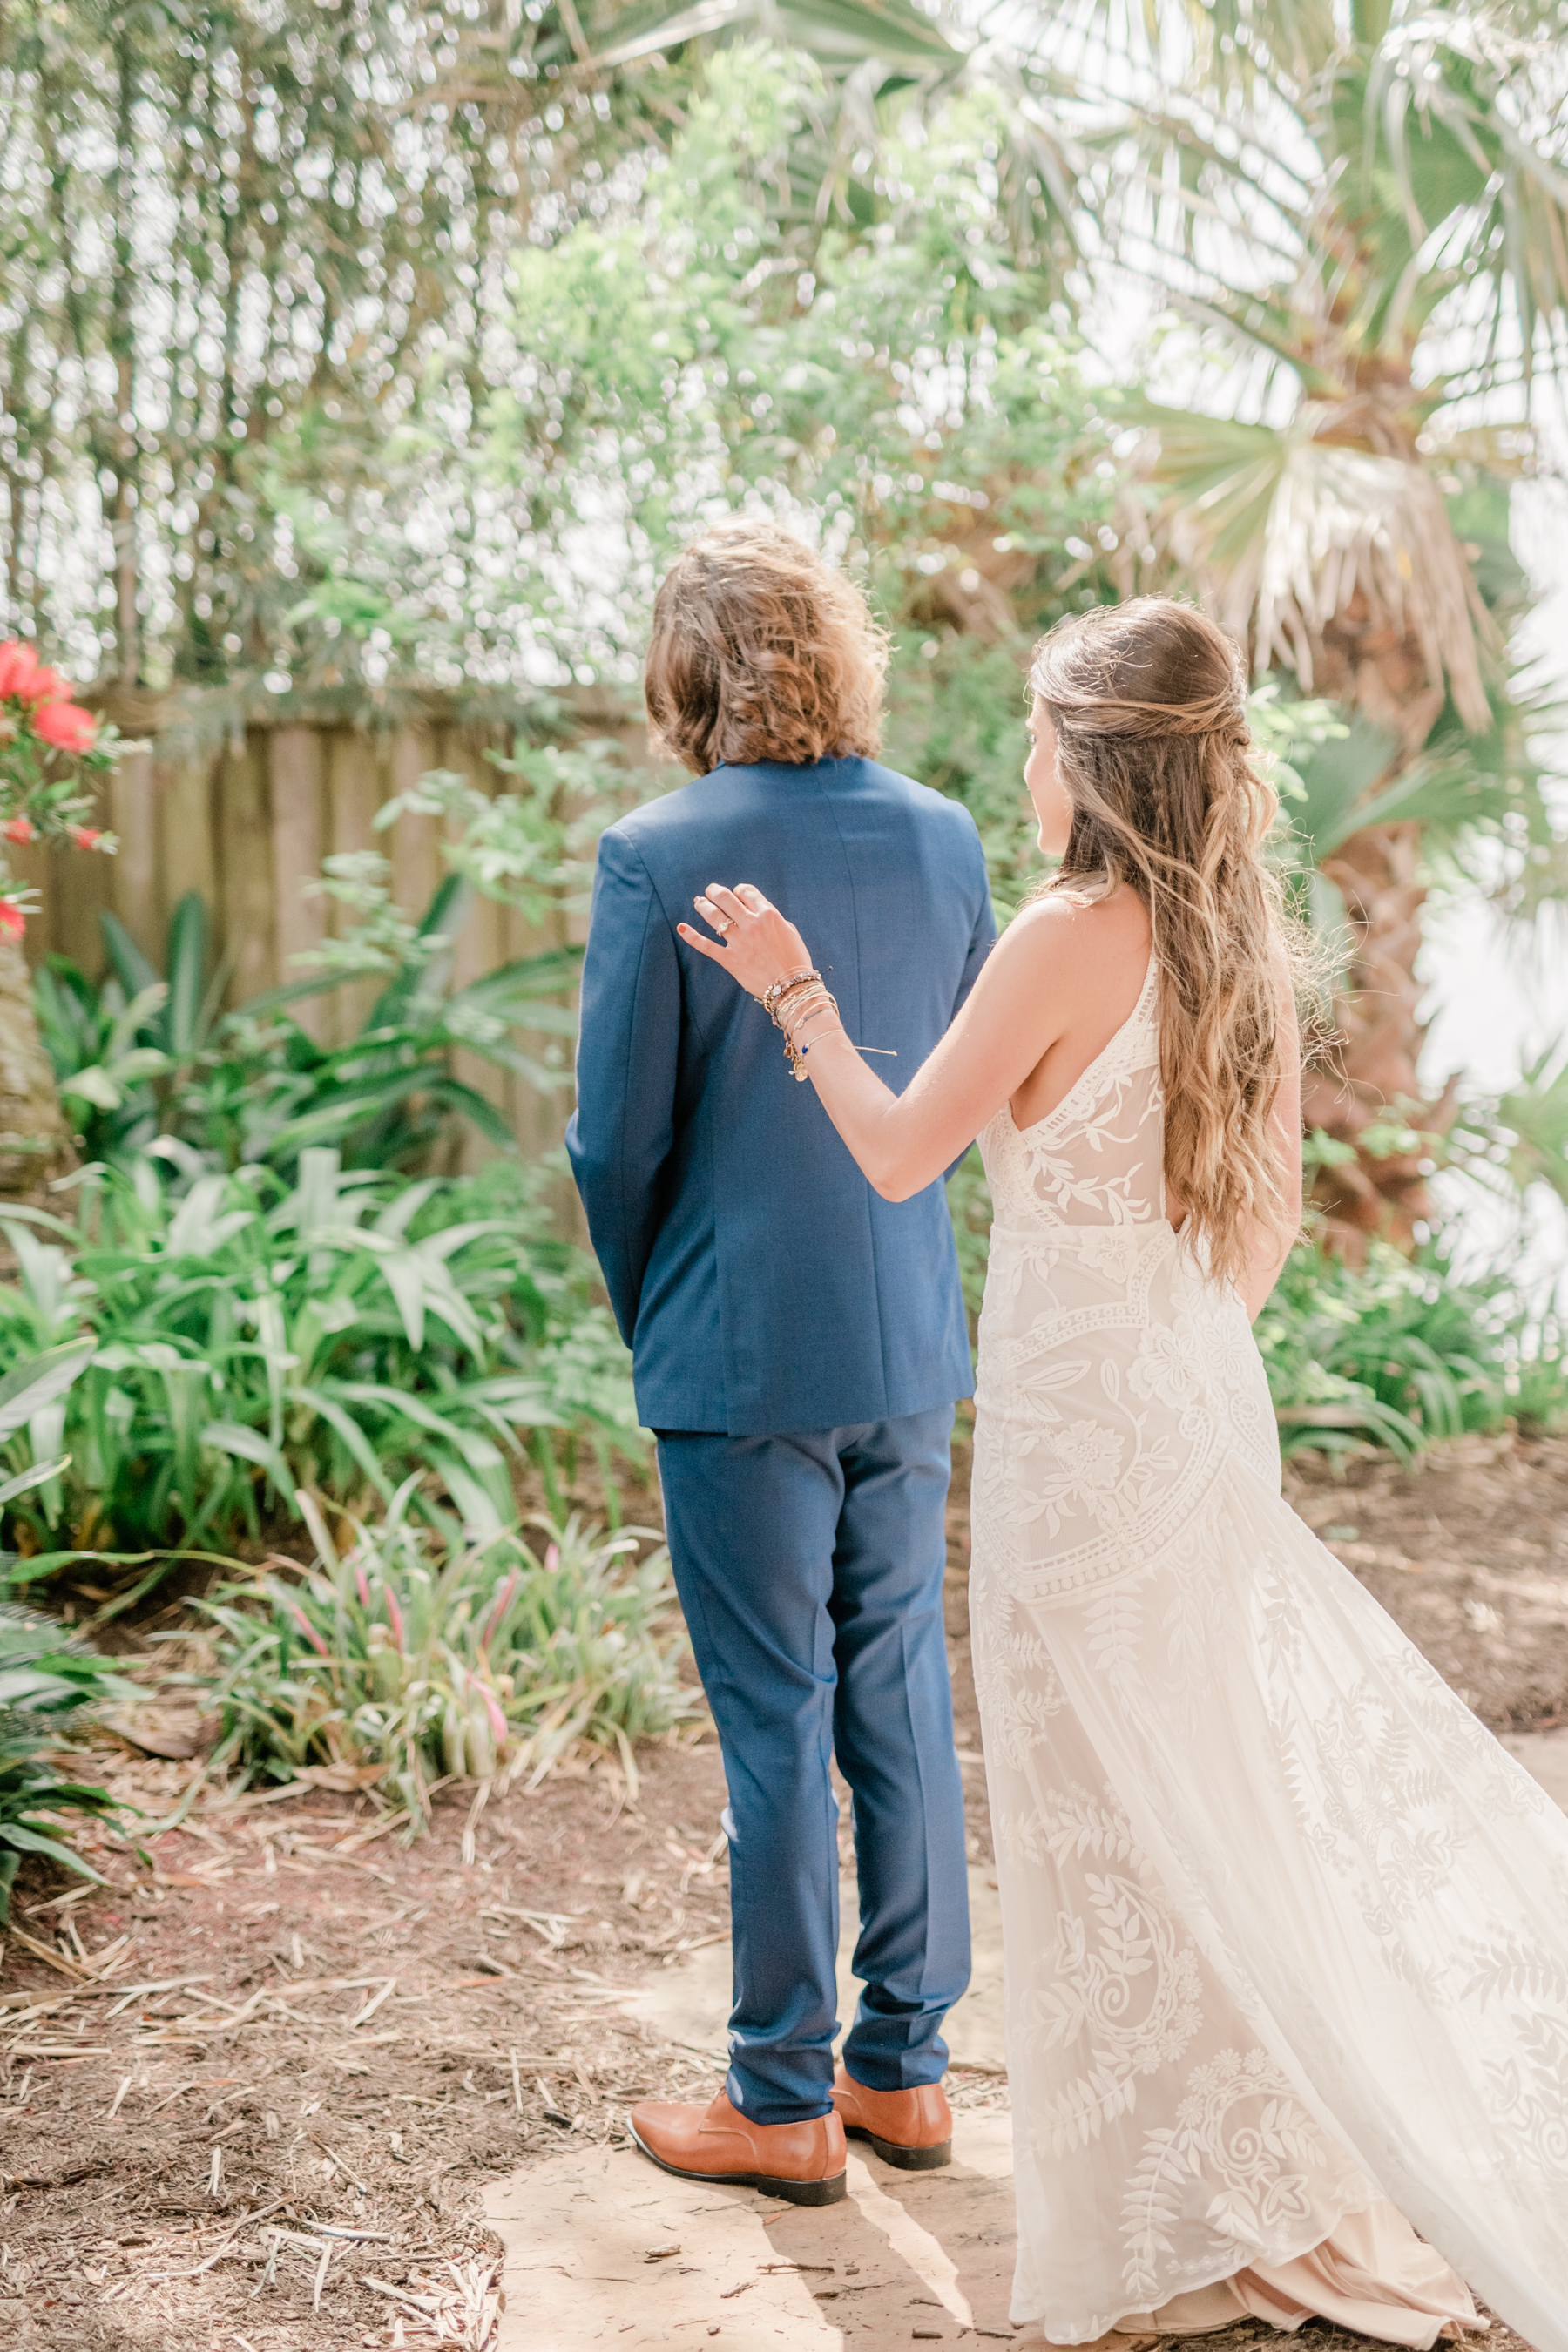 First look with groom wedding day beach galveston blue groom suit no tie inspiration + destination planner coordinator epoch co + ten23 photography